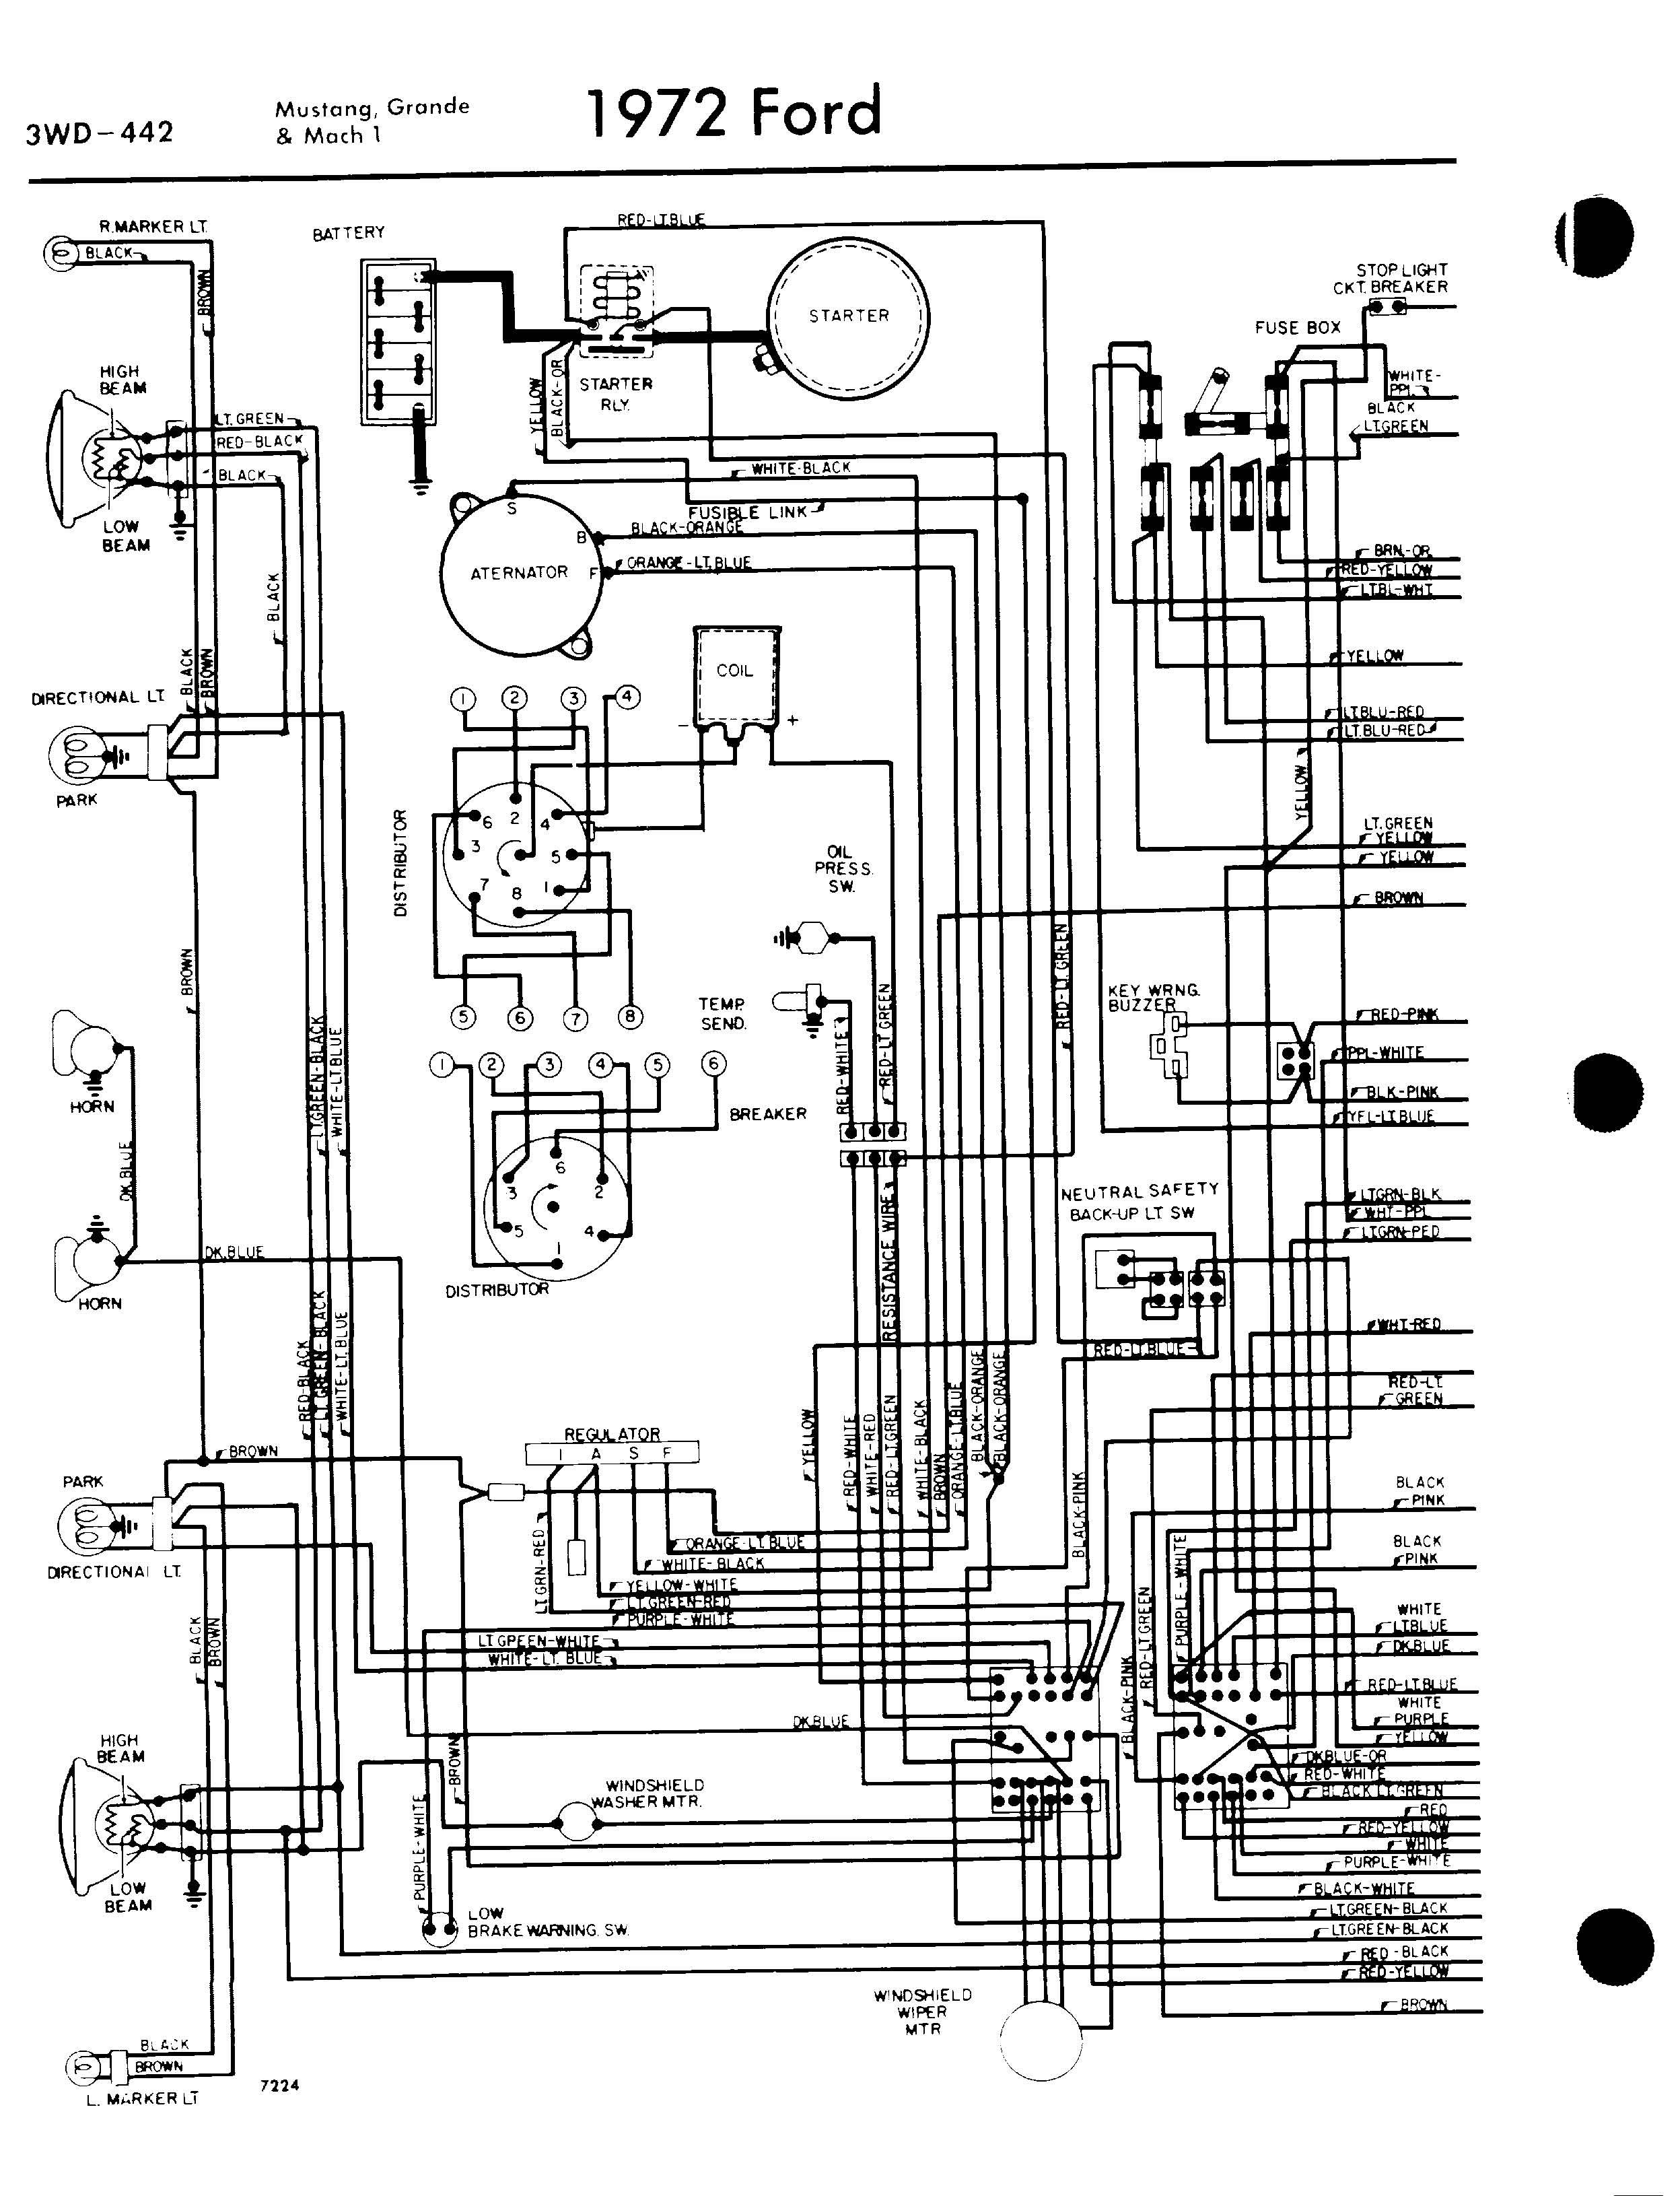 hight resolution of 1970 mustang fuse diagram wiring diagram data val 2005 ford mustang fuse box 1970 mustang fuse